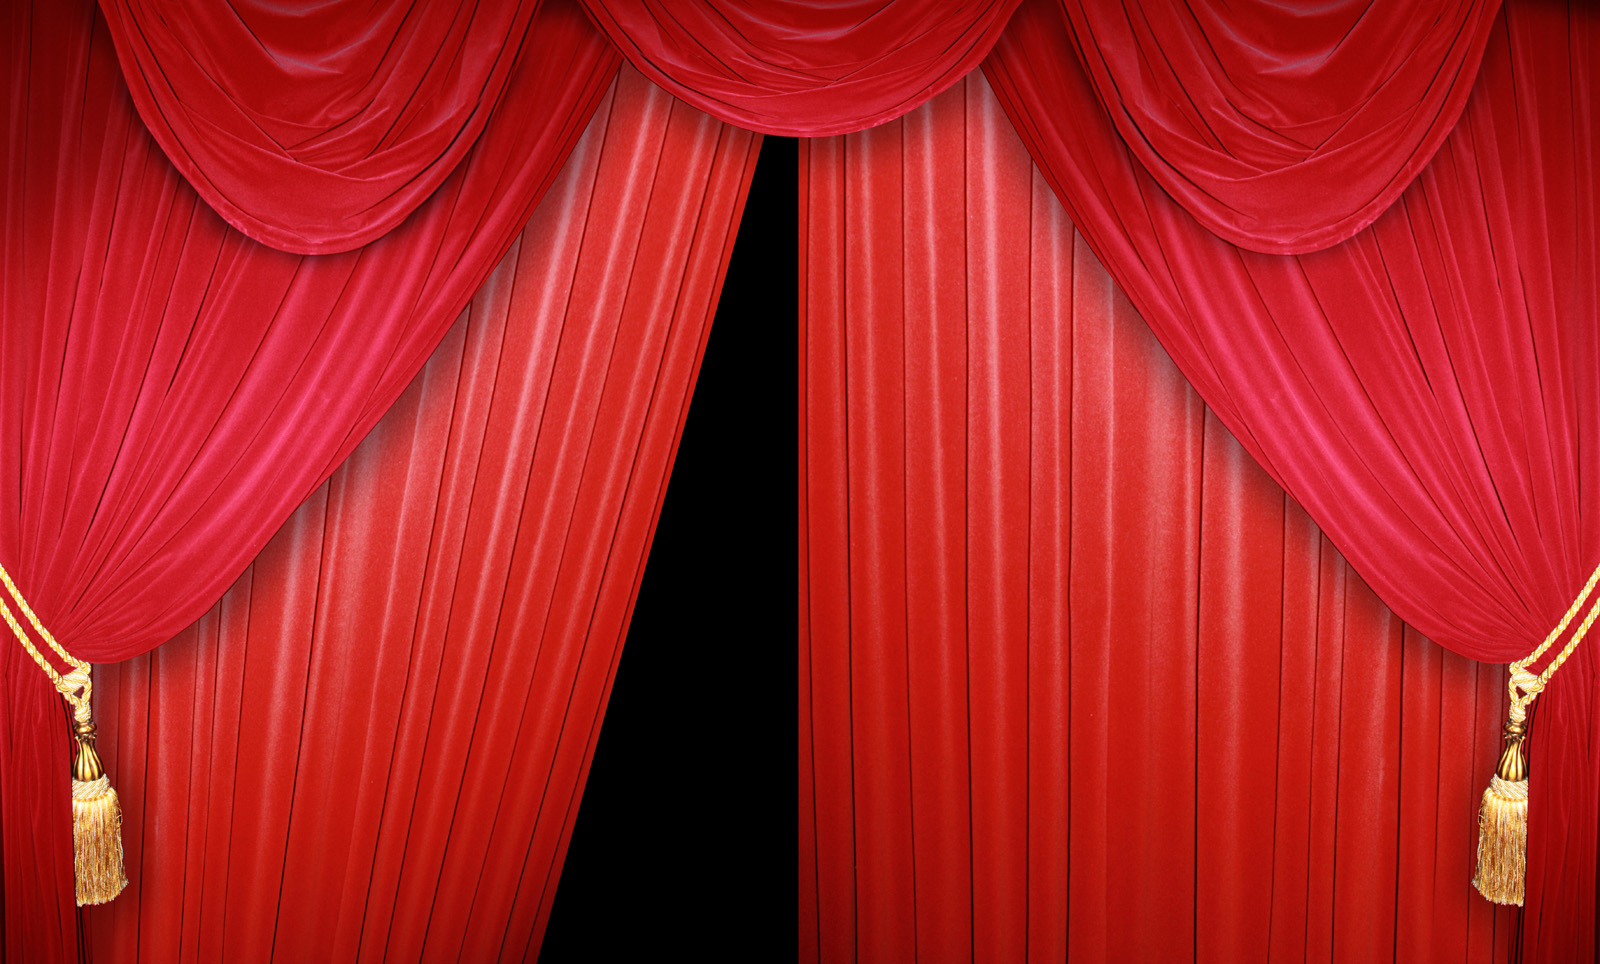 High-resolution red curtain 10363